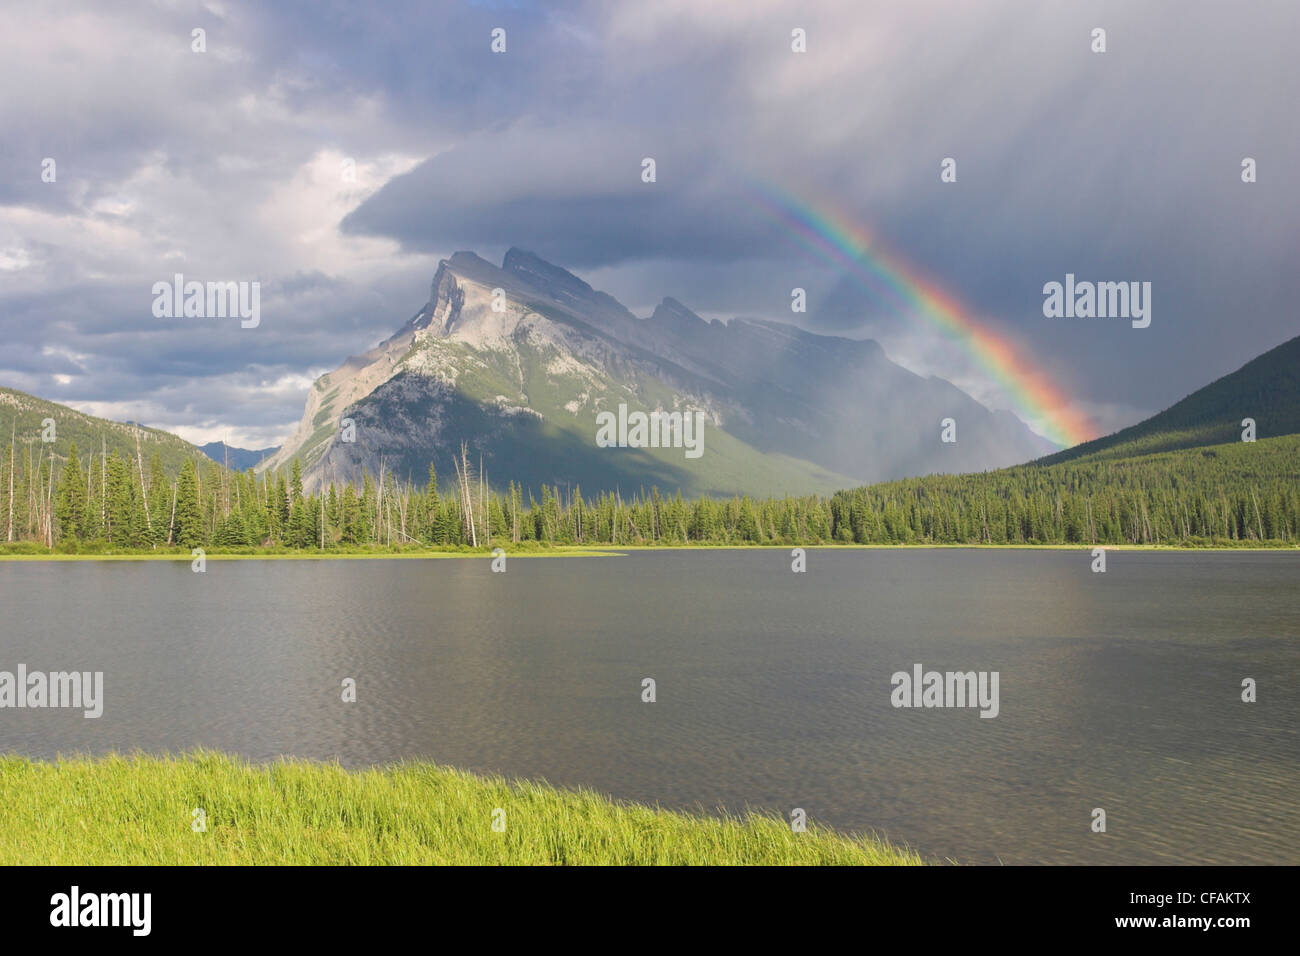 A beautiful rainbow over Mount Rundle in Banff national park, Alberta, Canada Stock Photo